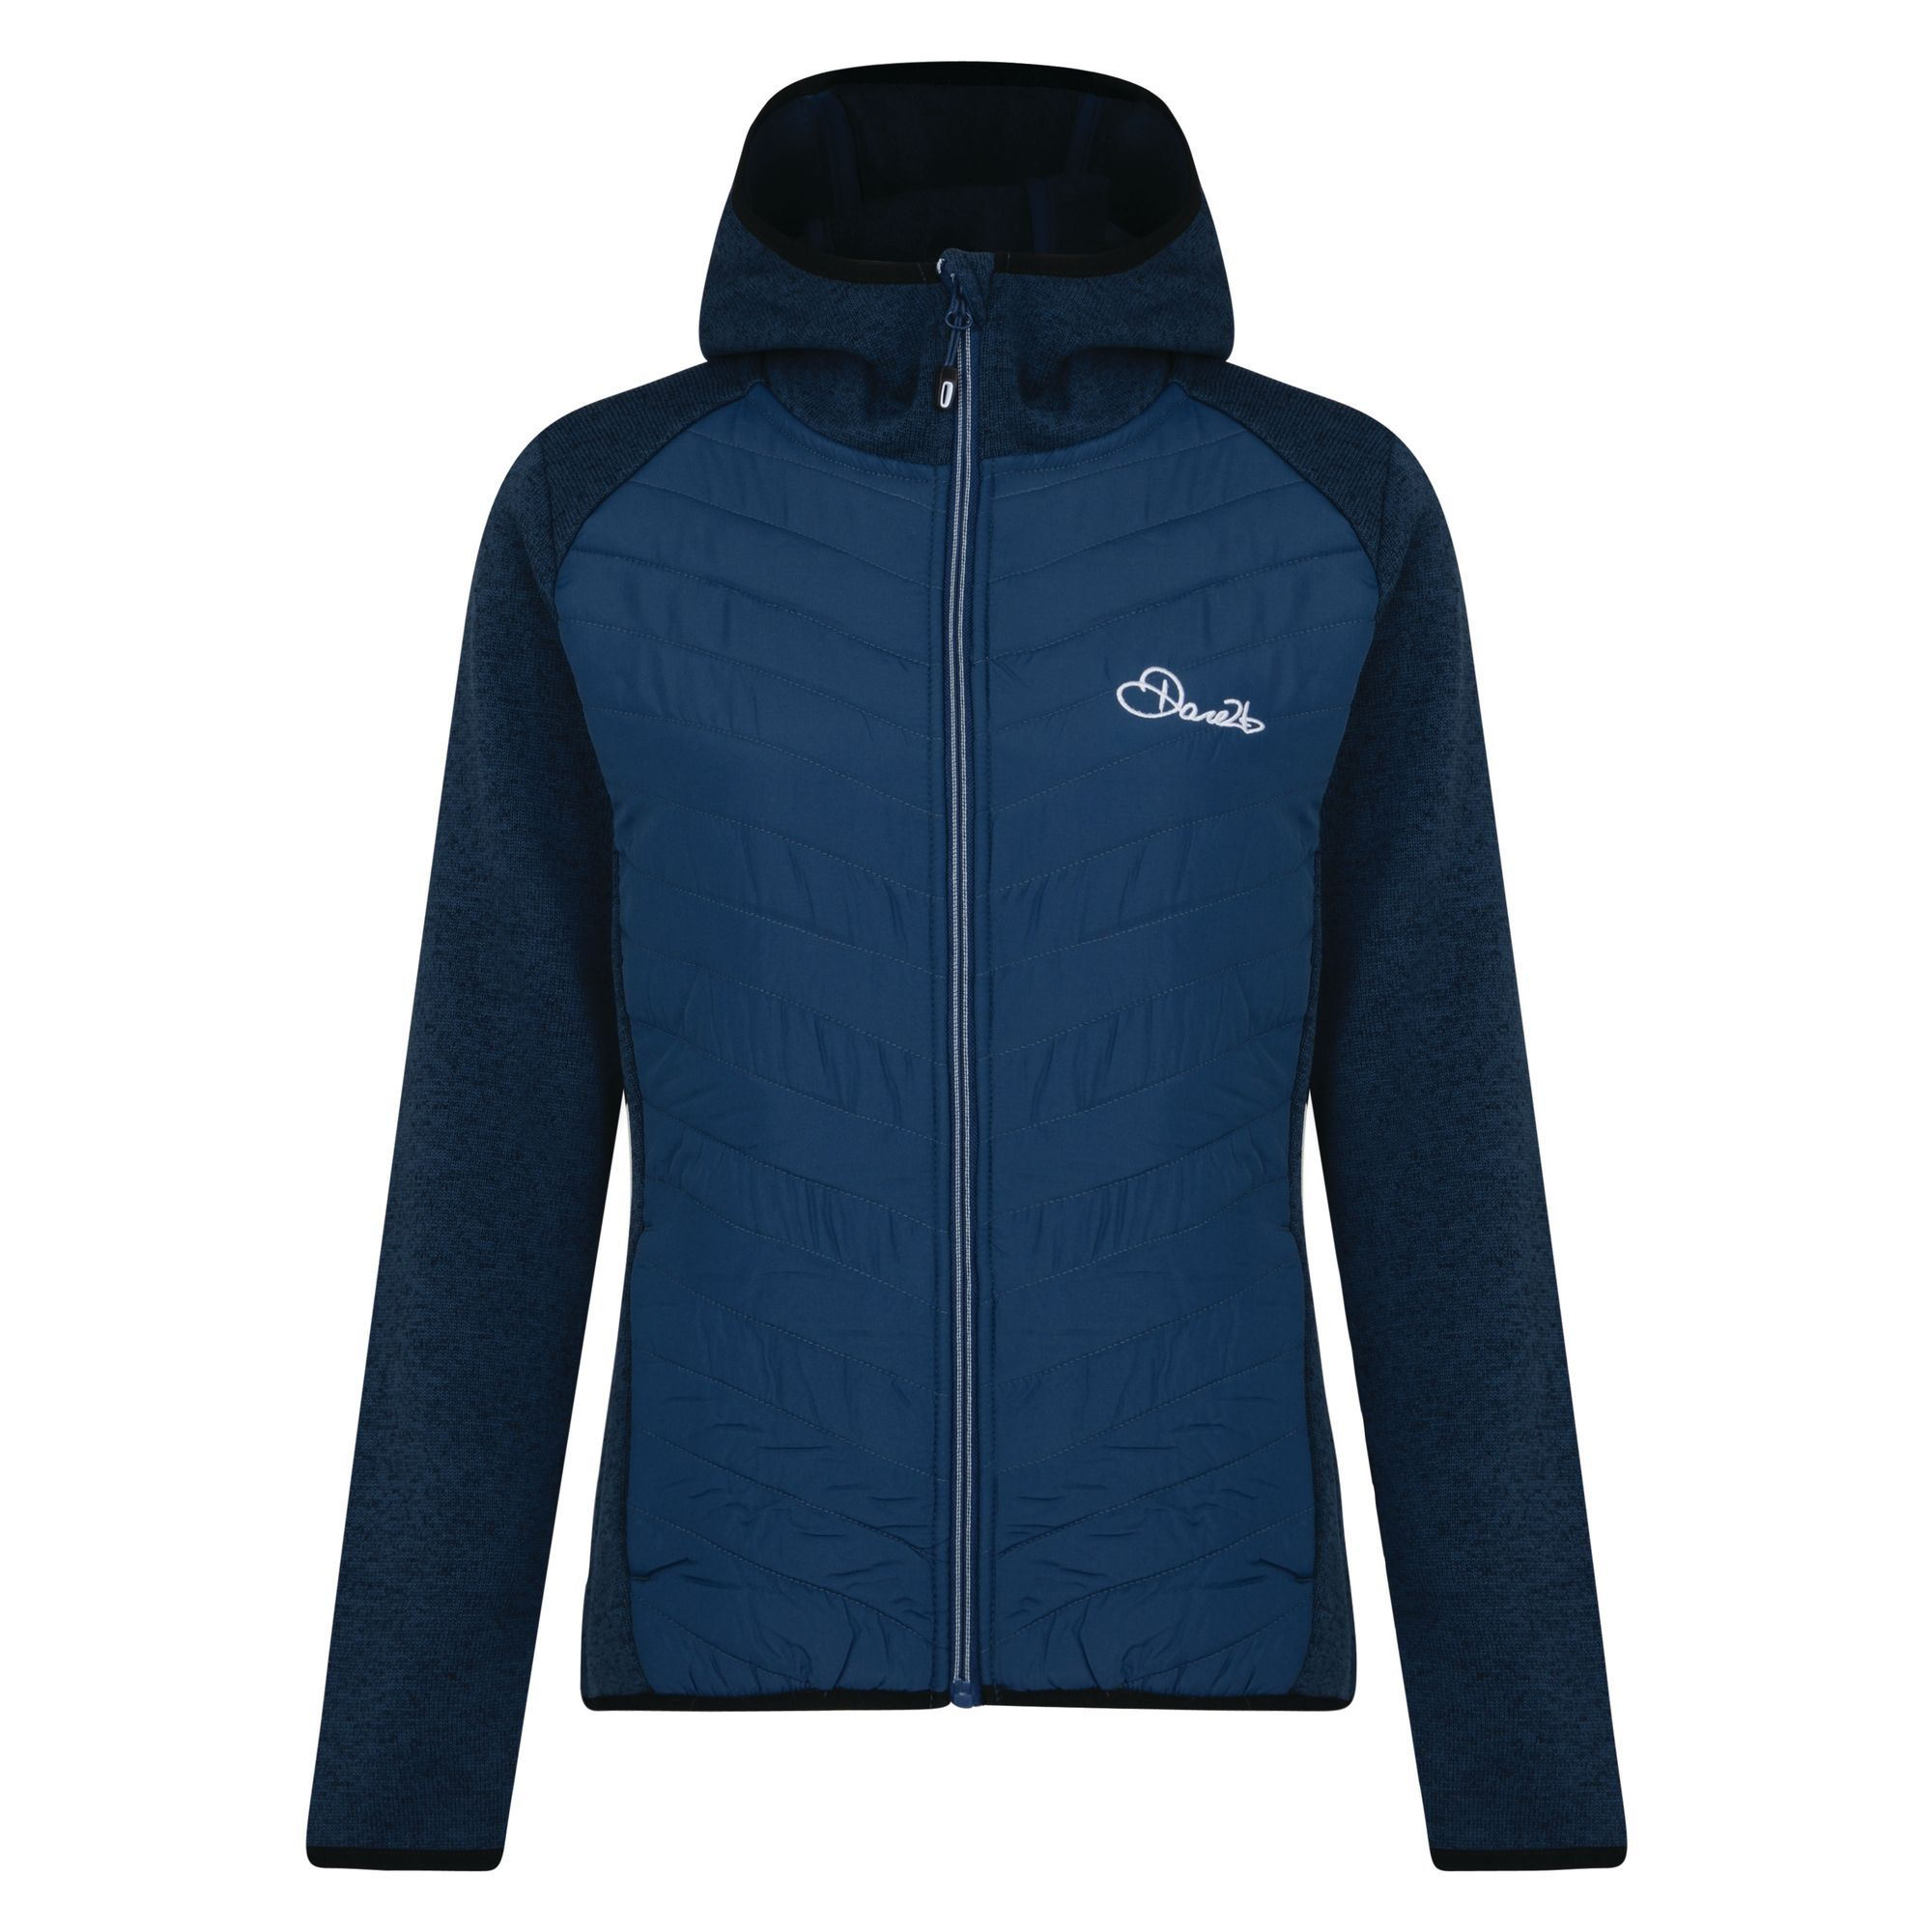 Dare2b-Refinery-Womens-Hybrid-Hooded-Insulated-Water-Repellent-Jacket-RRP-70 thumbnail 4